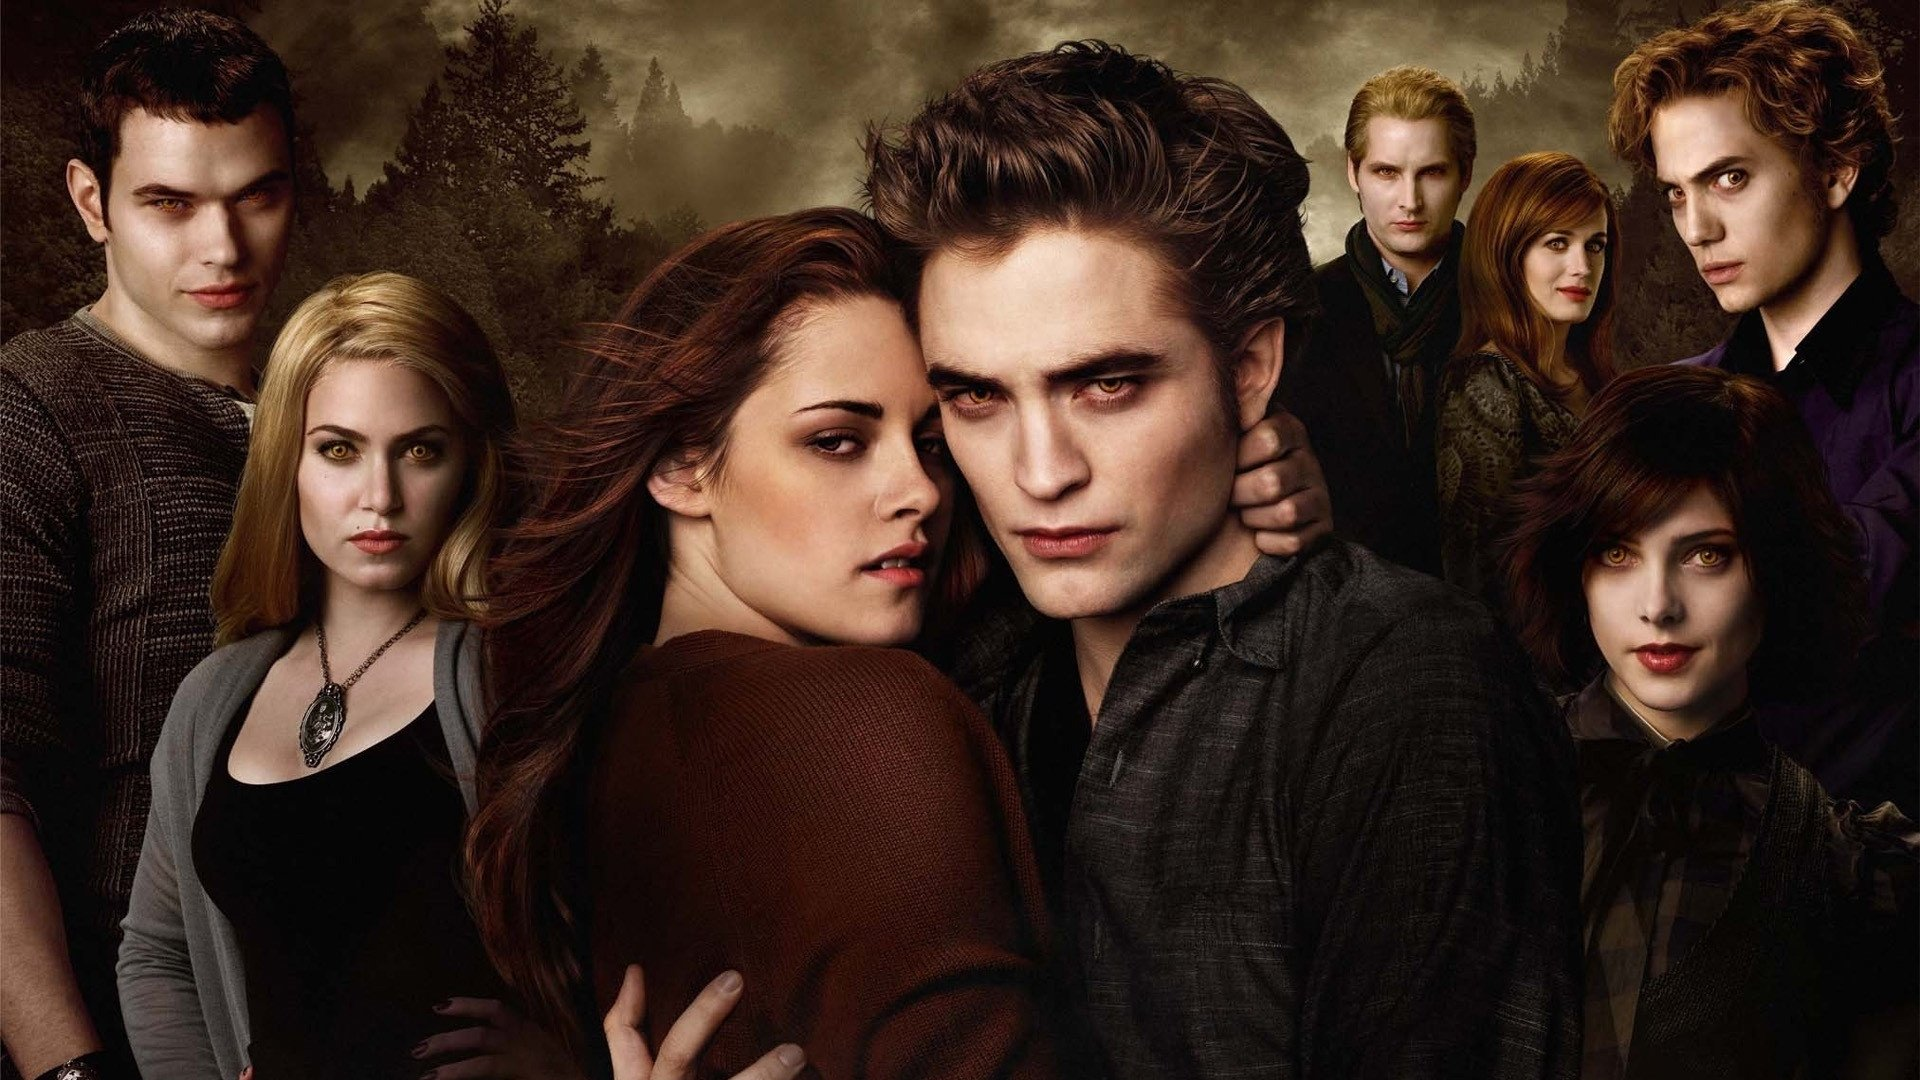 Movie - Twilight  Robert Pattinson Edward Cullen Kristen Stewart Bella Swan Wallpaper